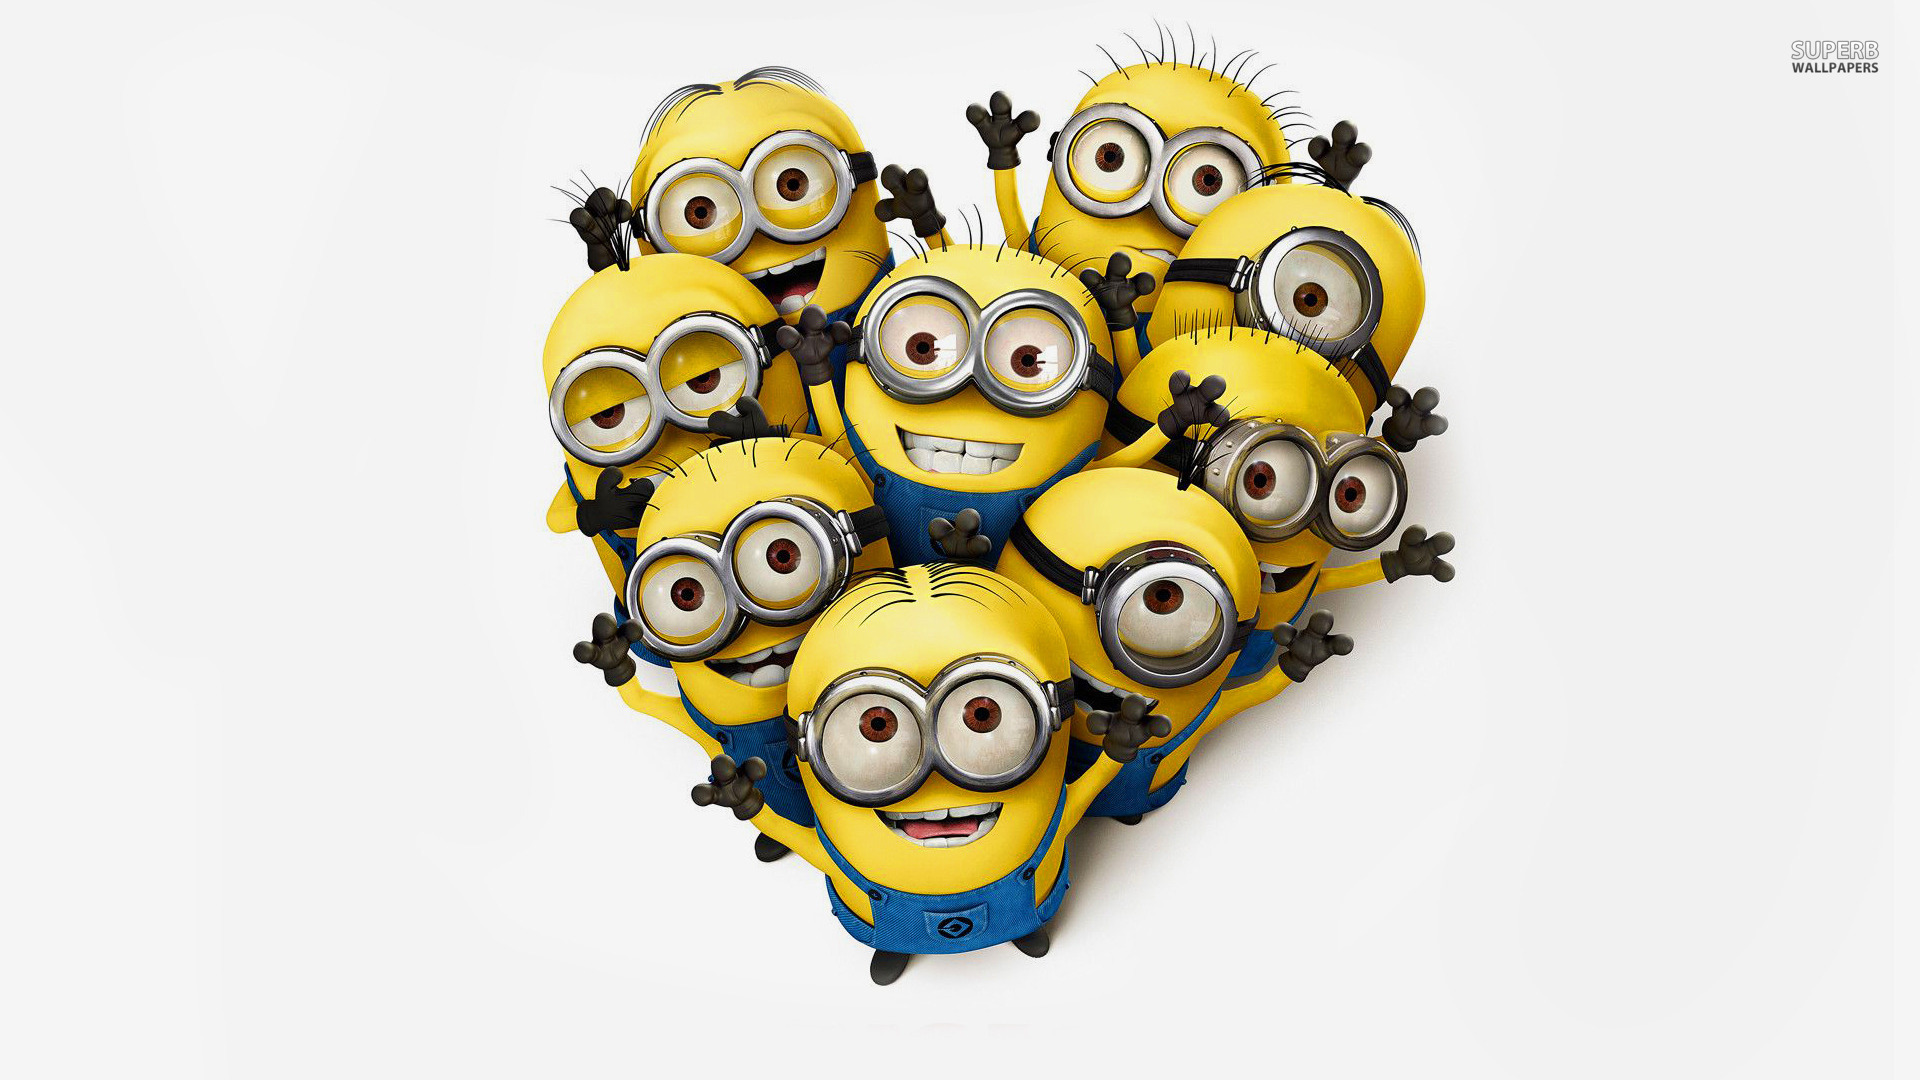 Despicable-Me-Minion-Page-1920×1080-Despicable-Me-Minion-Ad-wallpaper-wpc5804087